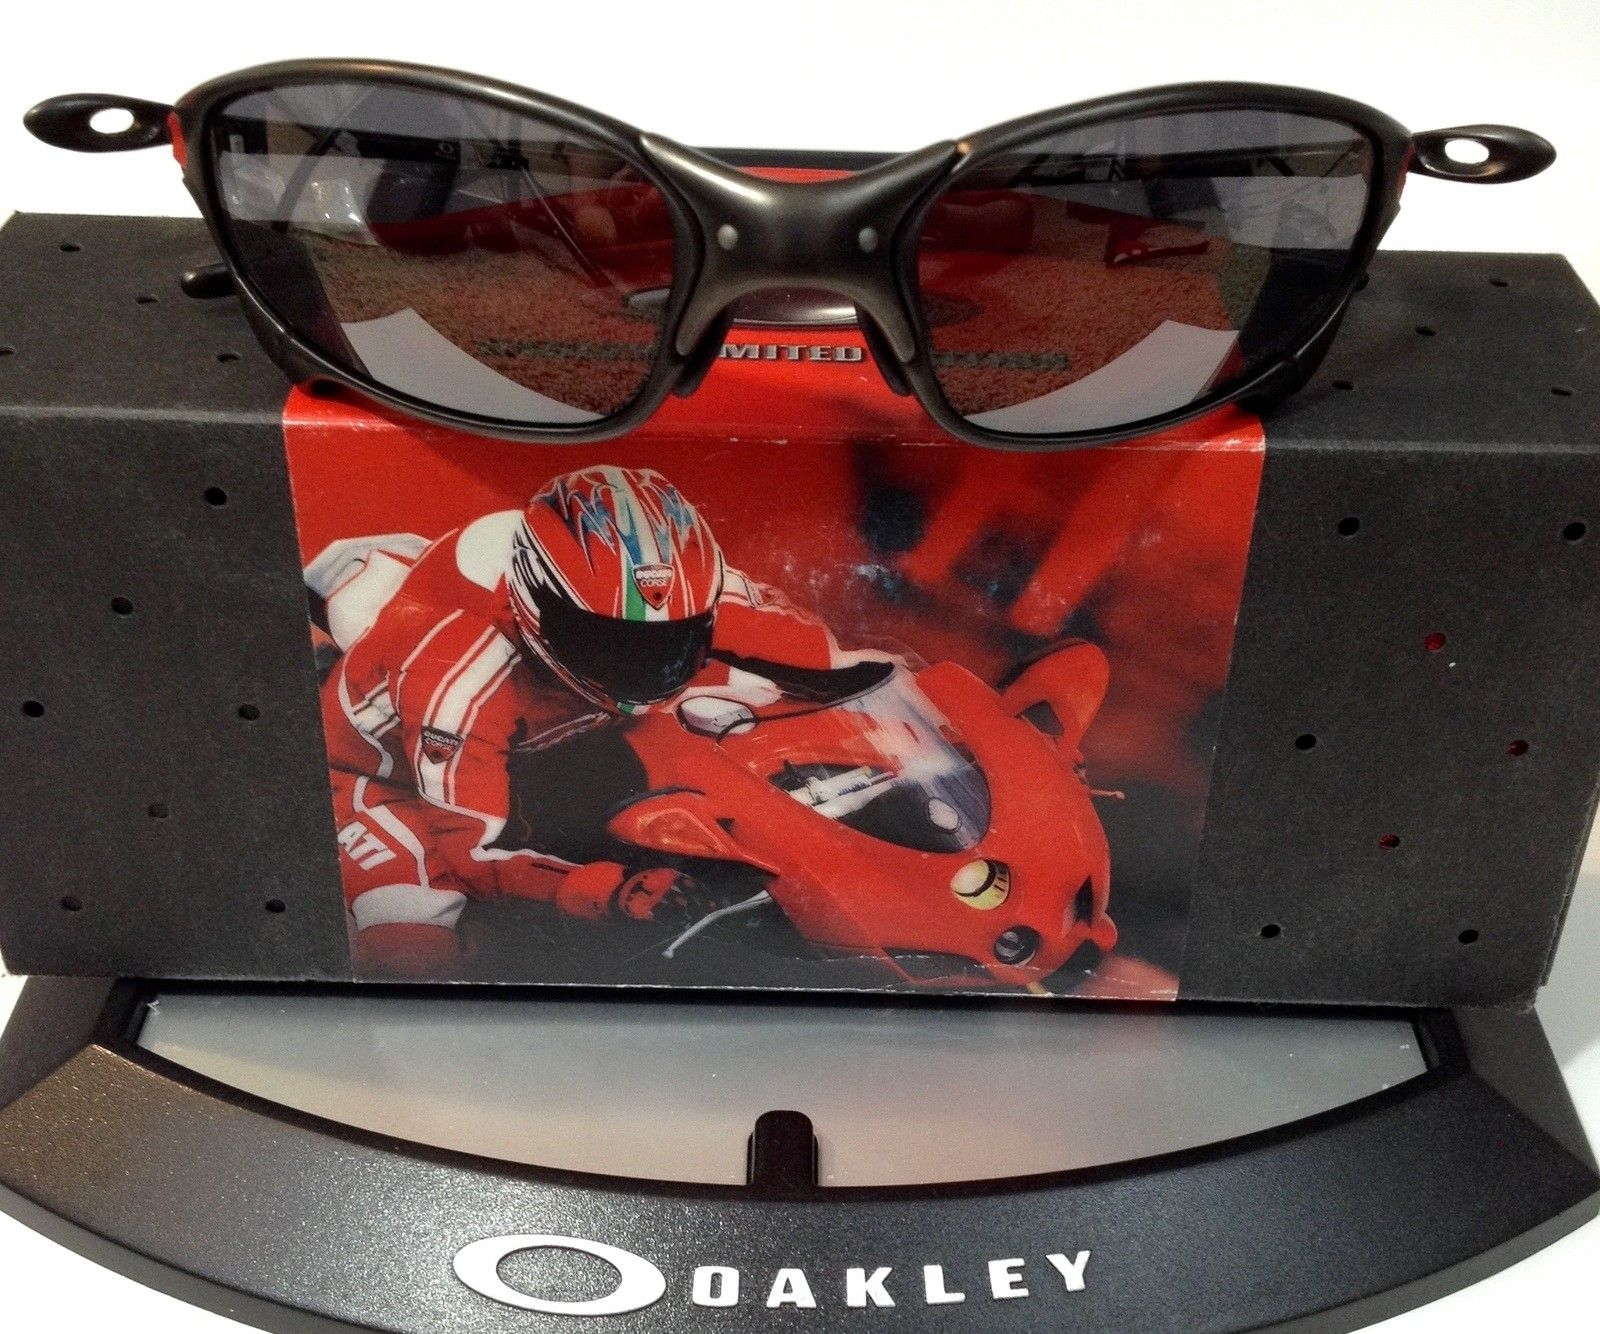 Ducati collection - image.jpg